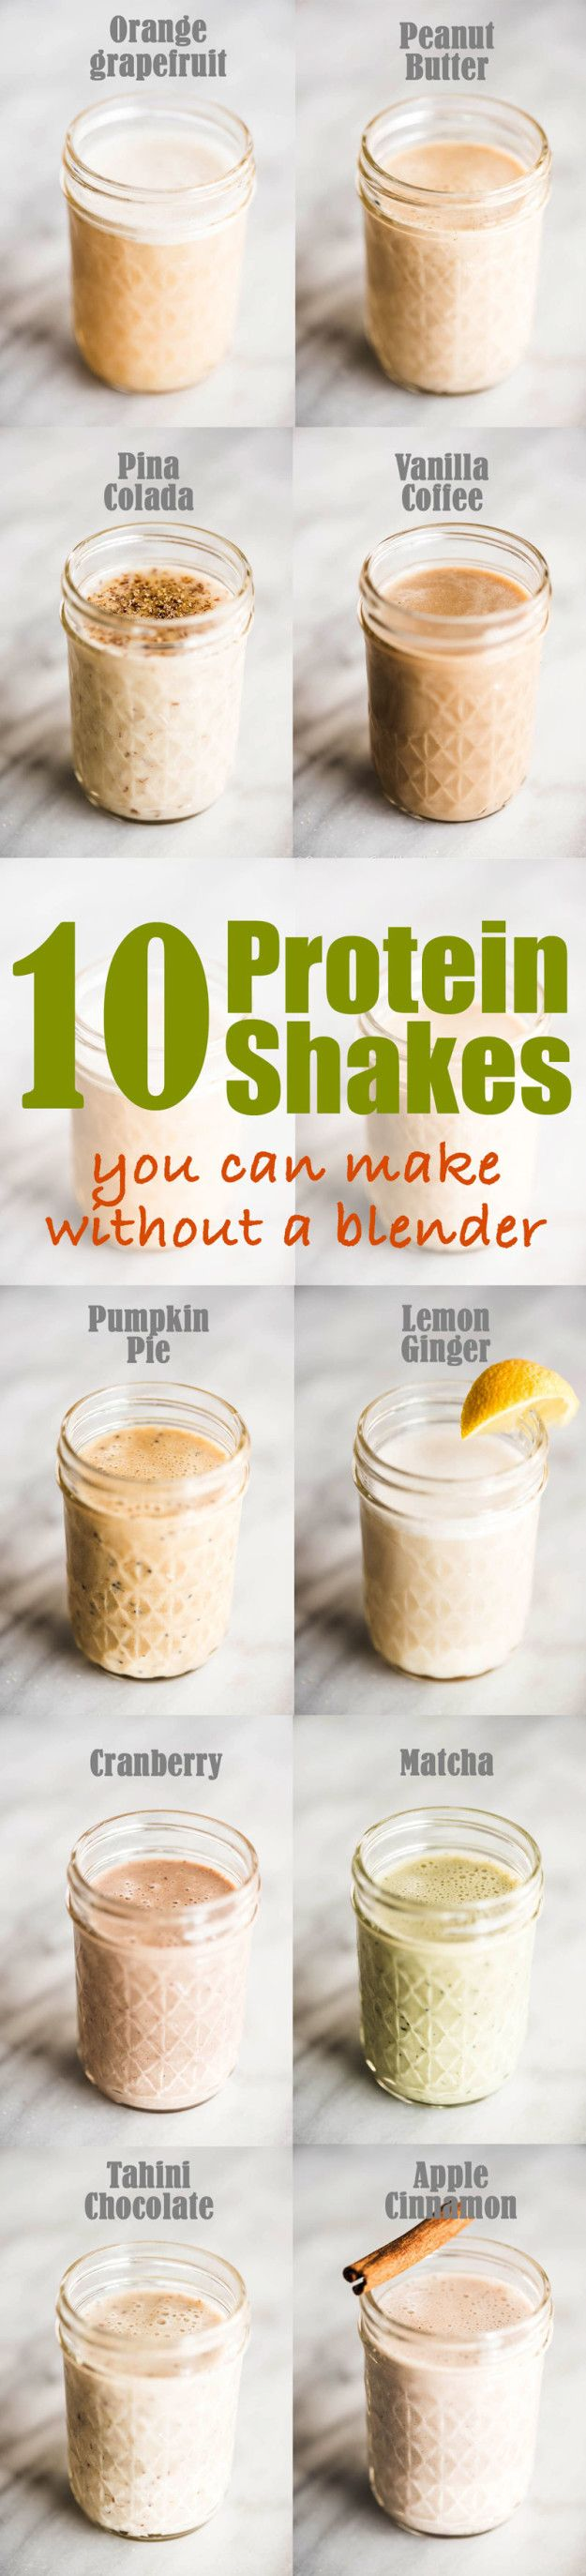 No Blender Protein Shakes | 10 Food Hacks To Help You Achieve Your Summer Fitness Goals Without Even Trying